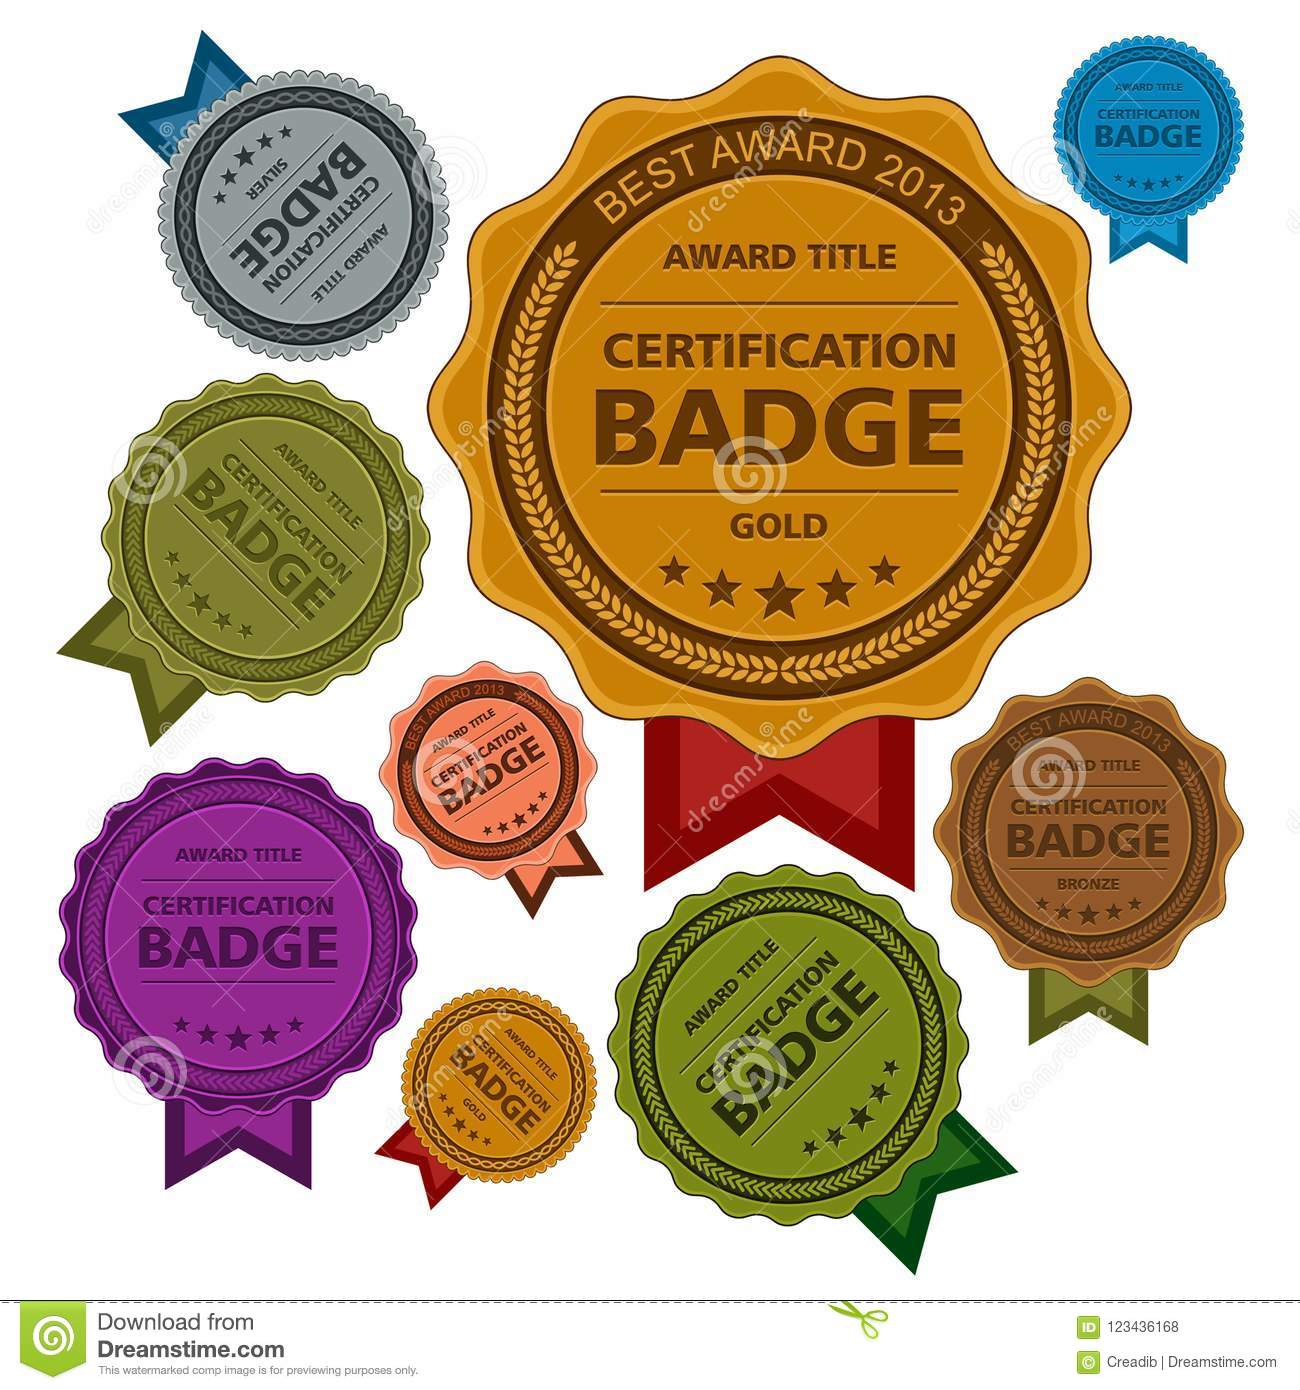 Colored Awards Badges, Certification Badges Template Design Stock ...